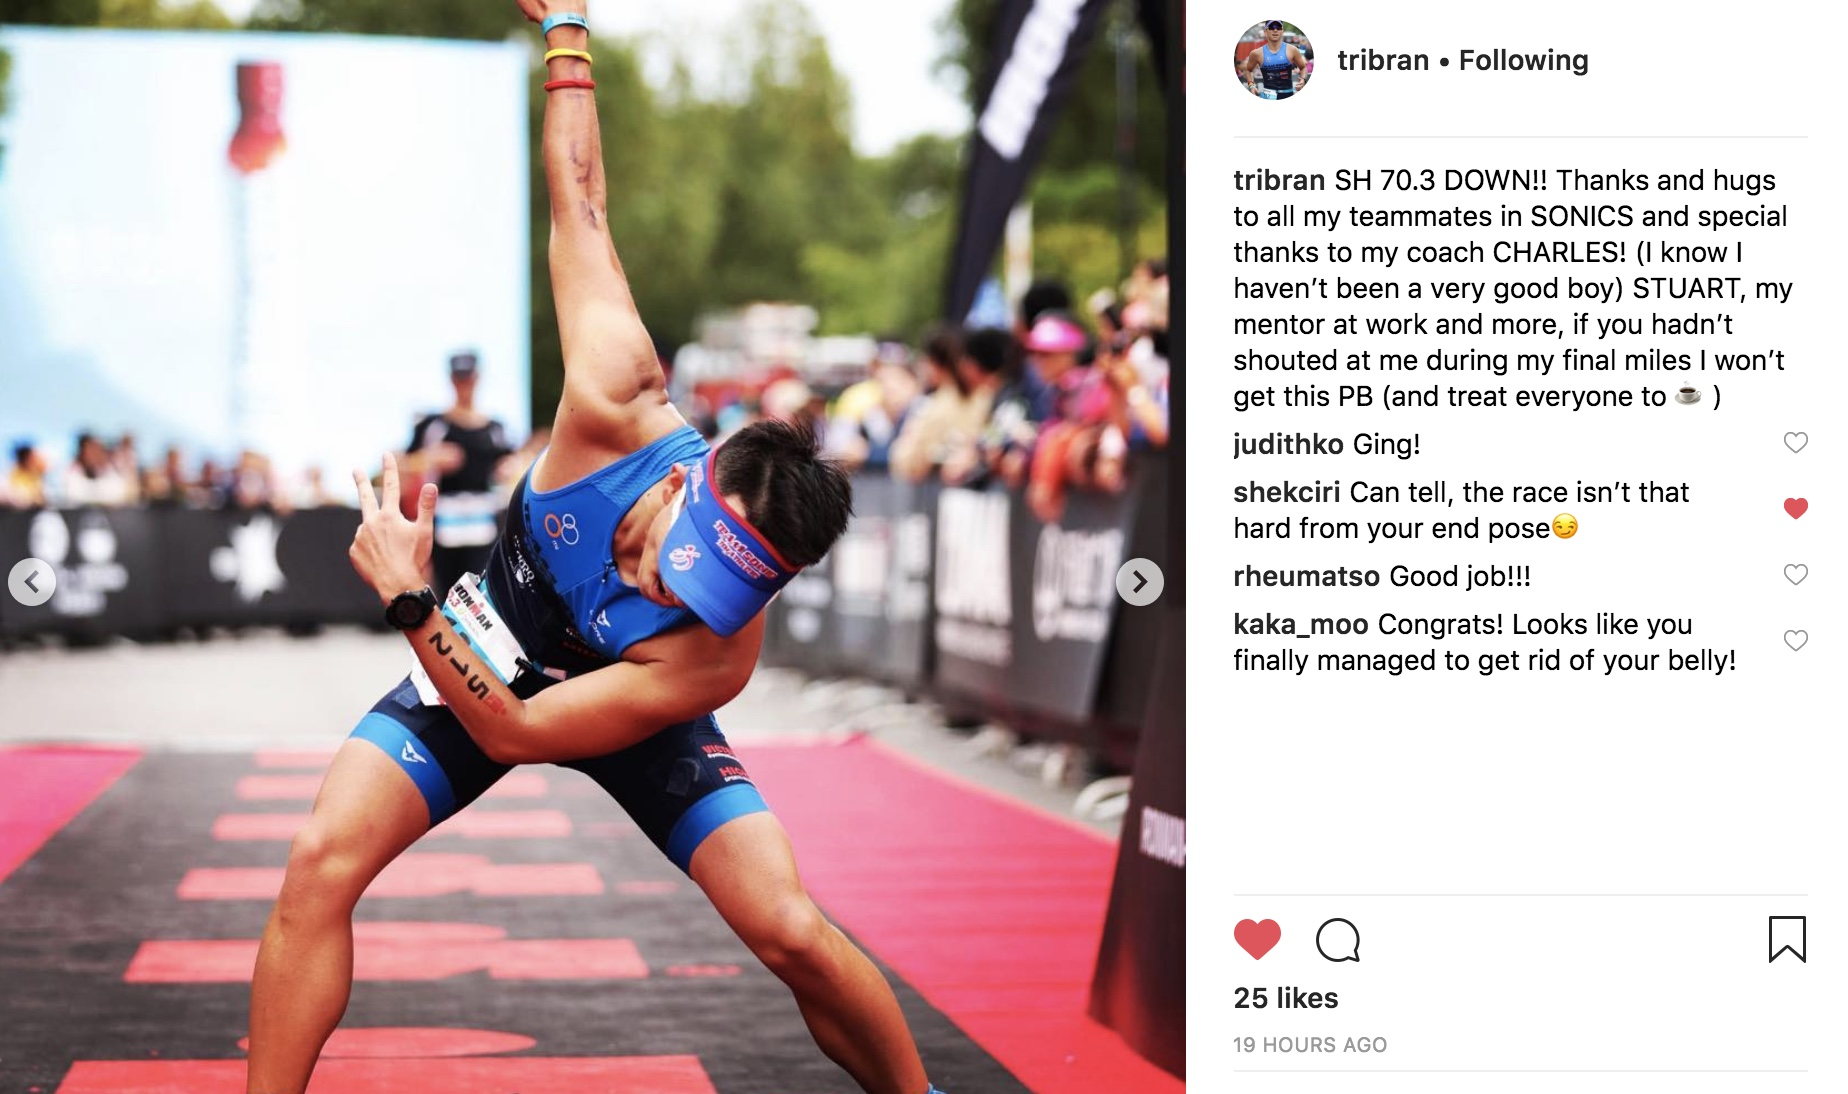 Brandon is the guy like to have some fun at training and he likes to mix my prescribed weekly program like a special fried rice! But it doesn't stop him to finish another 70.3 with PB and gain a slot to the World Championship! Keep this finish line pose in Nice!!